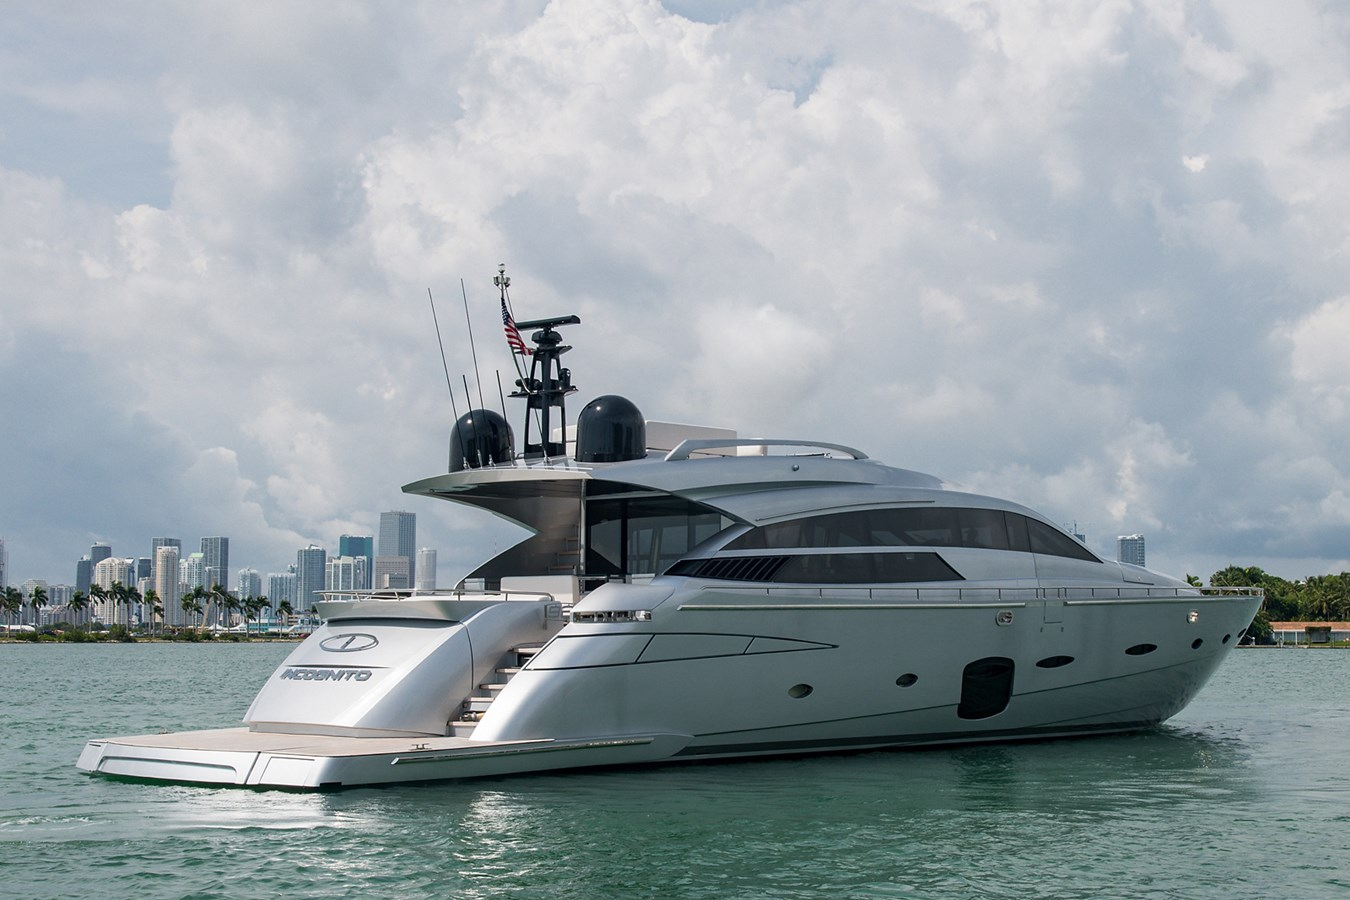 Incognito_Stern Profile6 2012 PERSHING  Motor Yacht 2810539